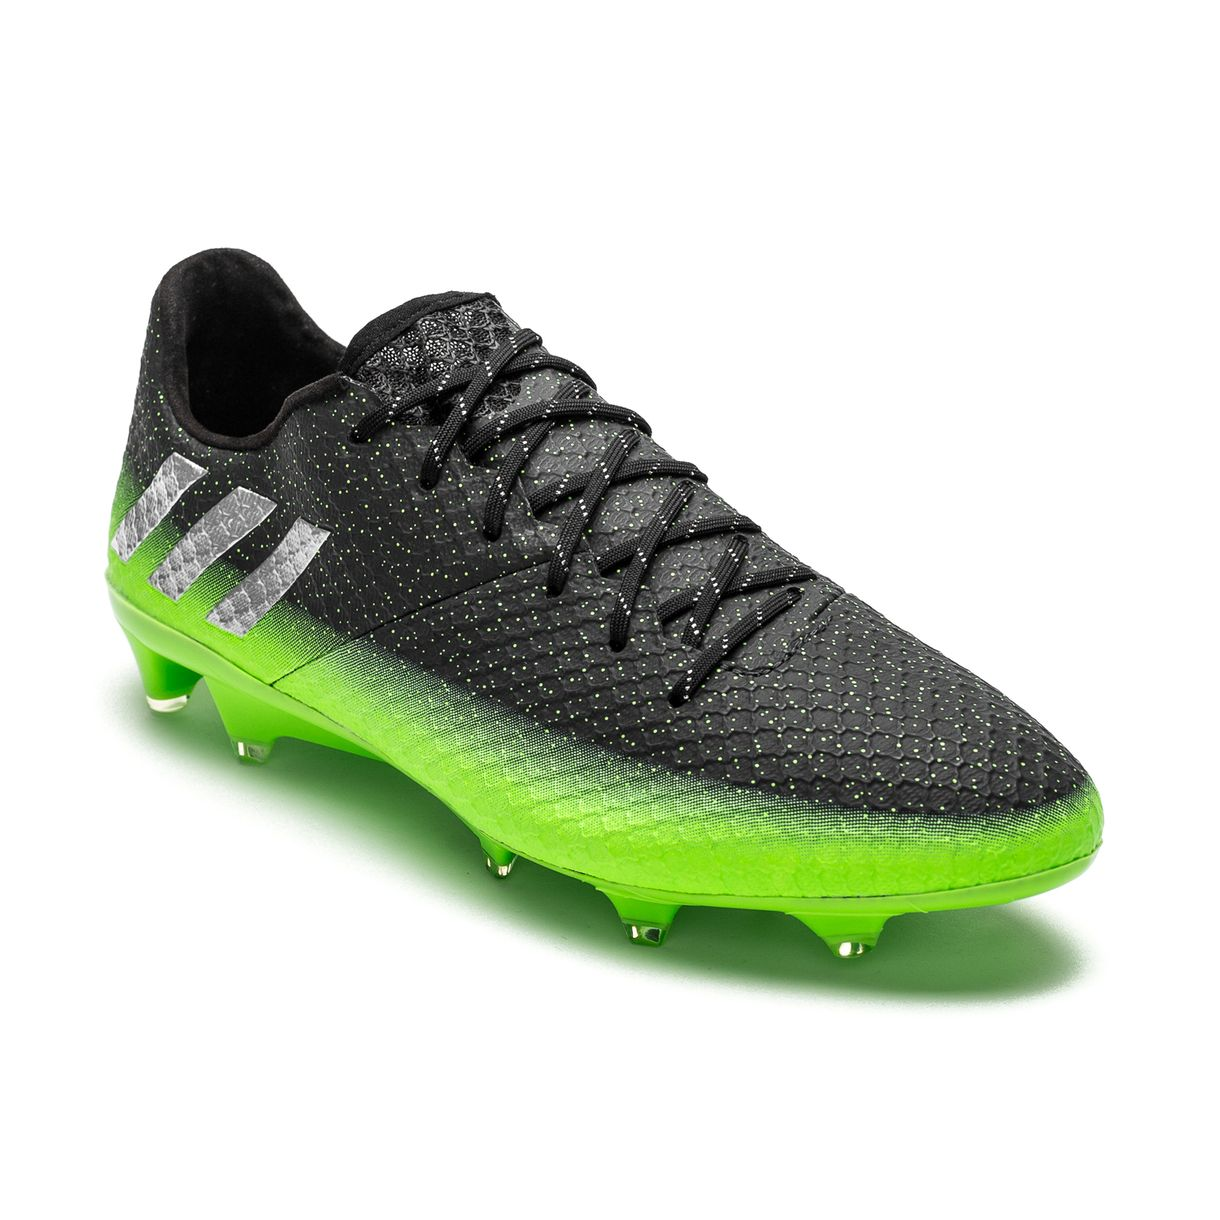 ... Click To Enlarge Image  Adidas_messi_16_1_fg_ag_space_dust_dark_grey_silver_metallic_solar_green_f  ...